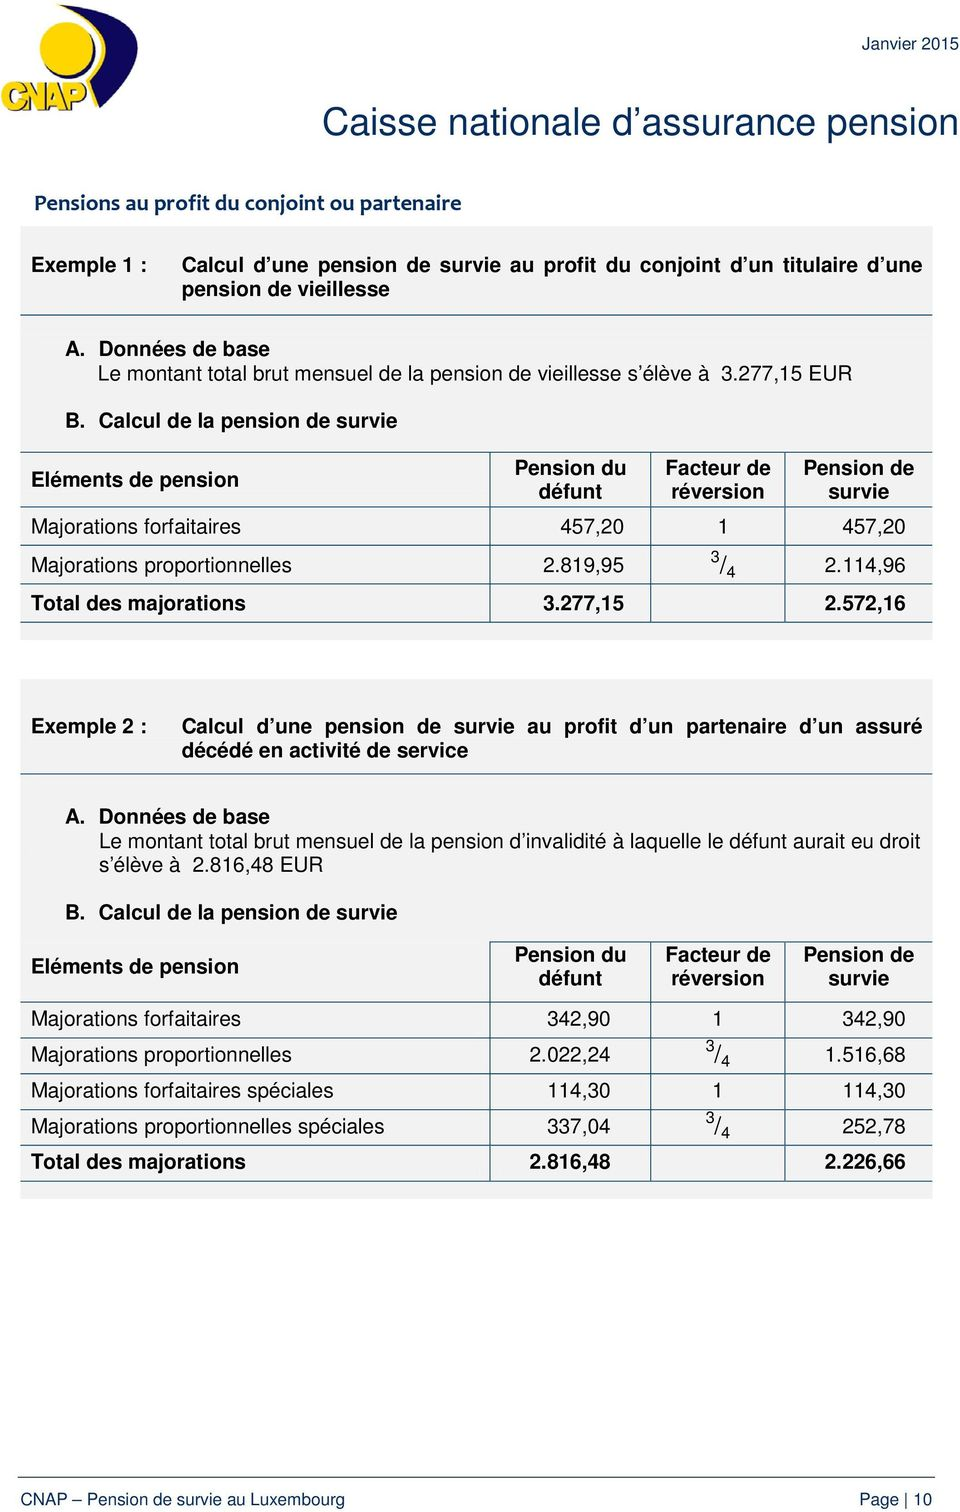 Calcul de la pension de survie Eléments de pension Pension du défunt Facteur de réversion Pension de survie Majorations forfaitaires 457,20 1 457,20 Majorations proportionnelles 2.819,95 3 / 4 2.